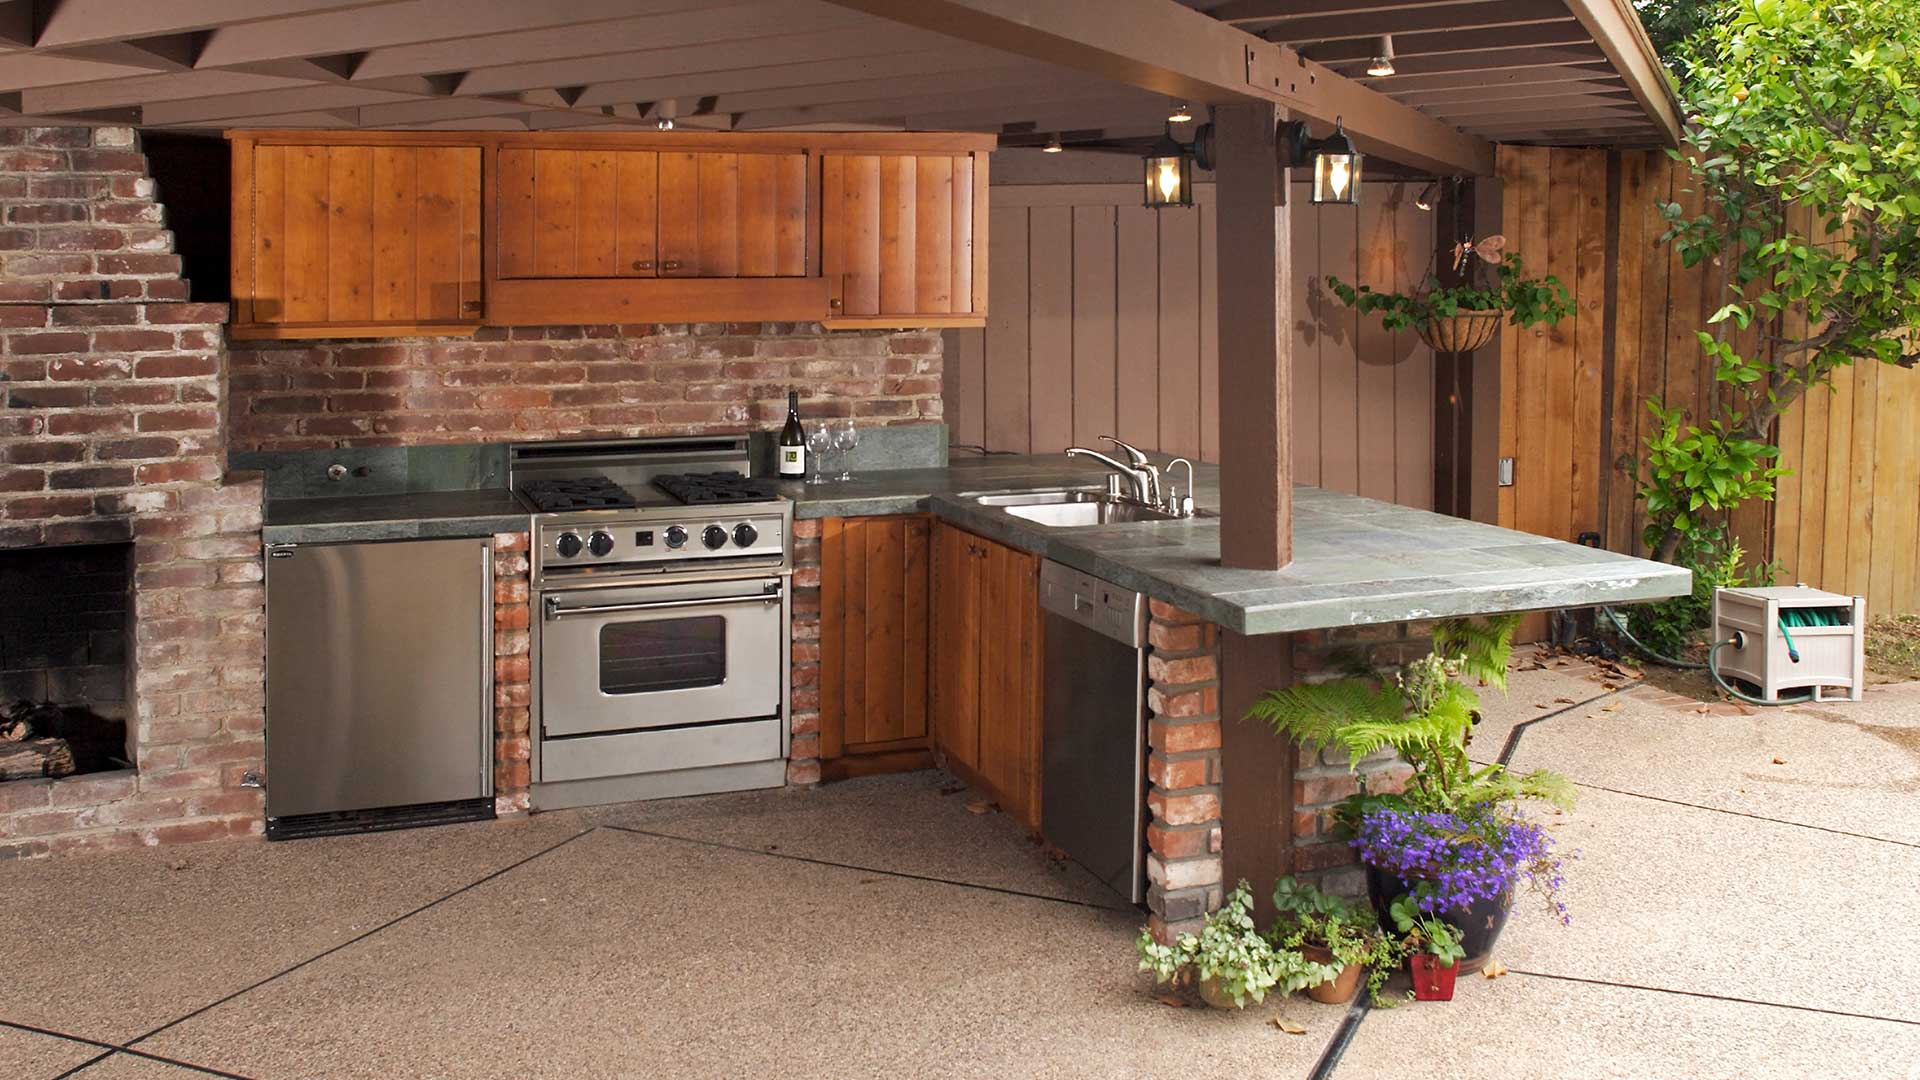 Professionally and expertly installed outdoor kitchen.